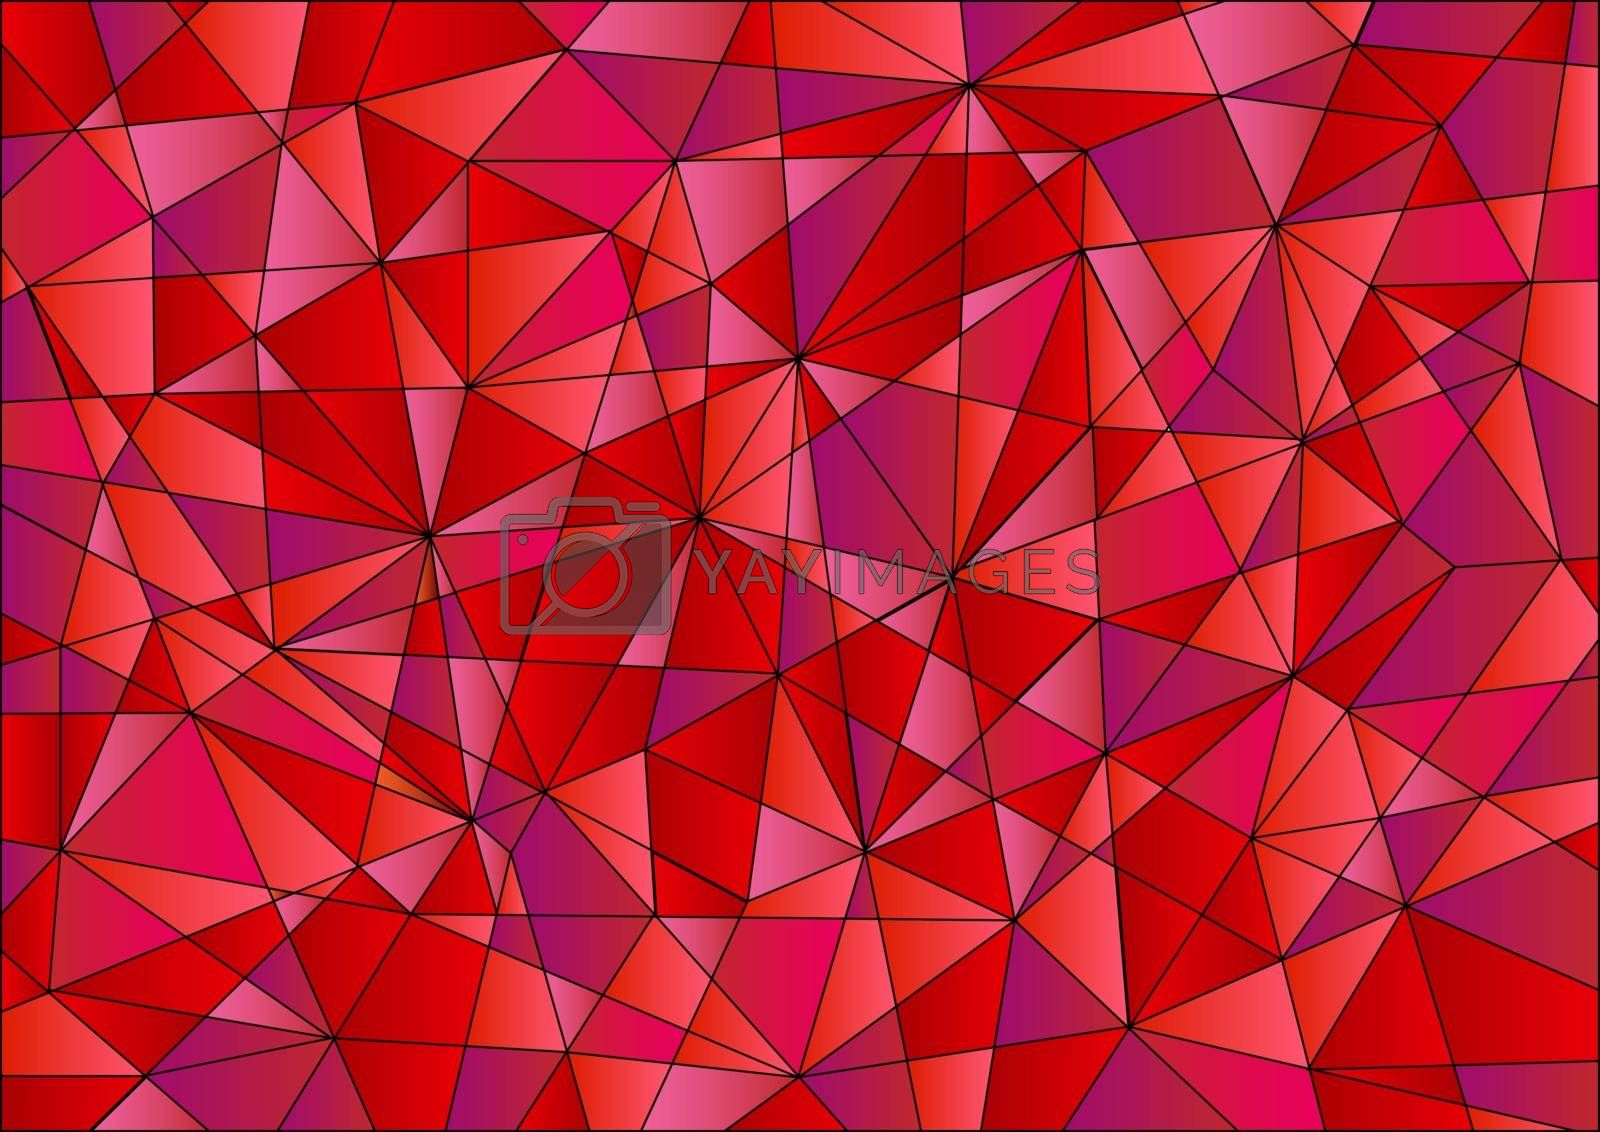 Abstract geometric pattern is composed of triangles of different sizes in red, violet and pink gradients.